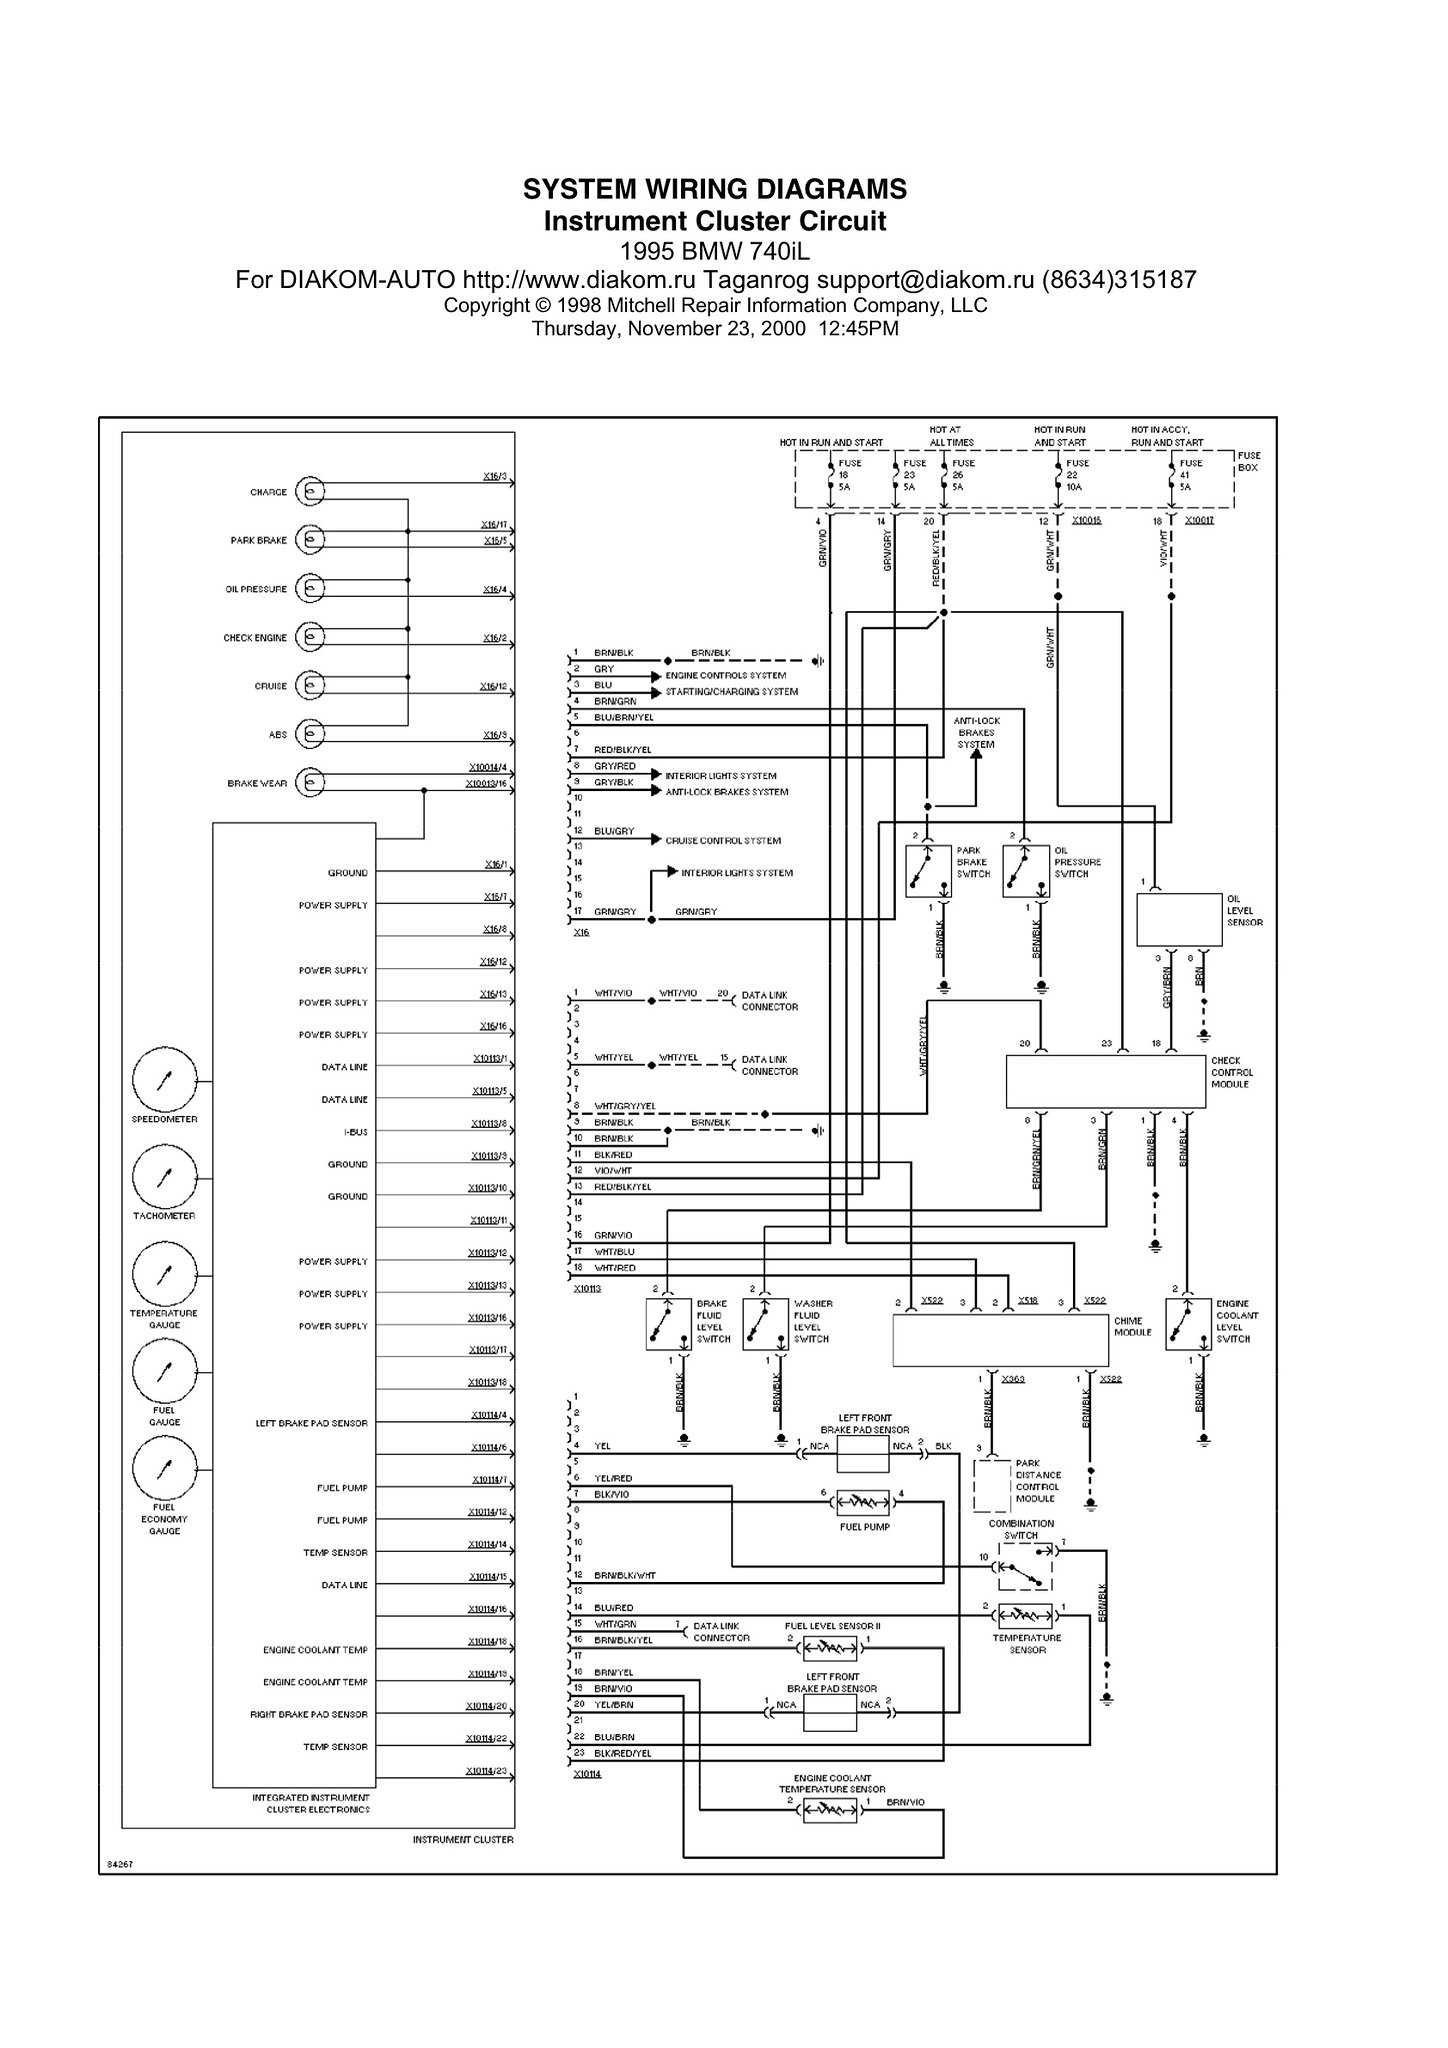 7703585142_dbc4ceb414_k bmw e39 wiring diagrams 1998 740i heated seat wiring diagram 2003 bmw e46 wiring diagram at readyjetset.co